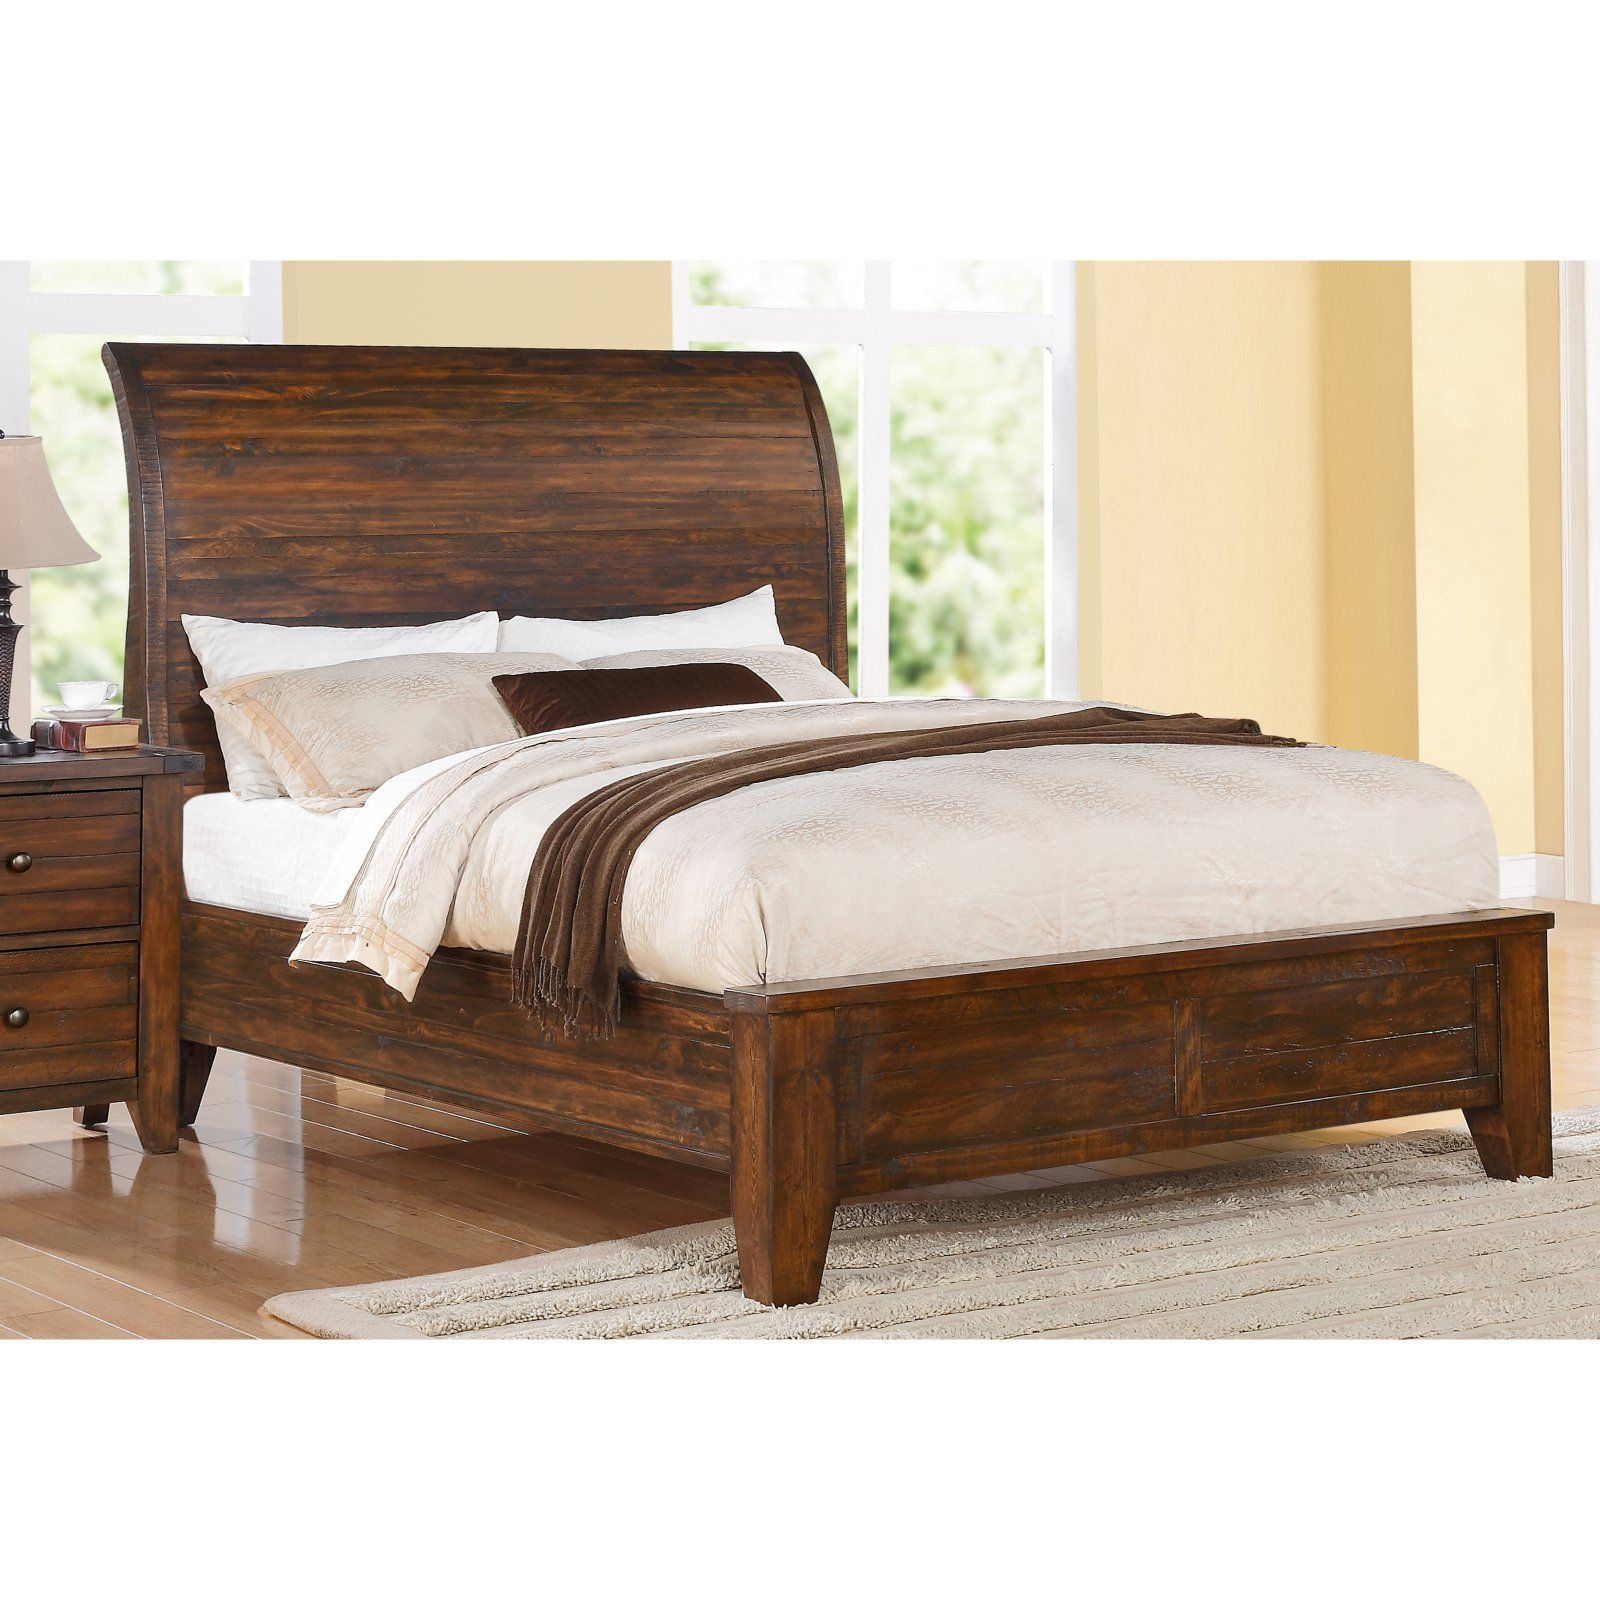 Cally Solid Wood Bed, Size California King in 2019 Wood